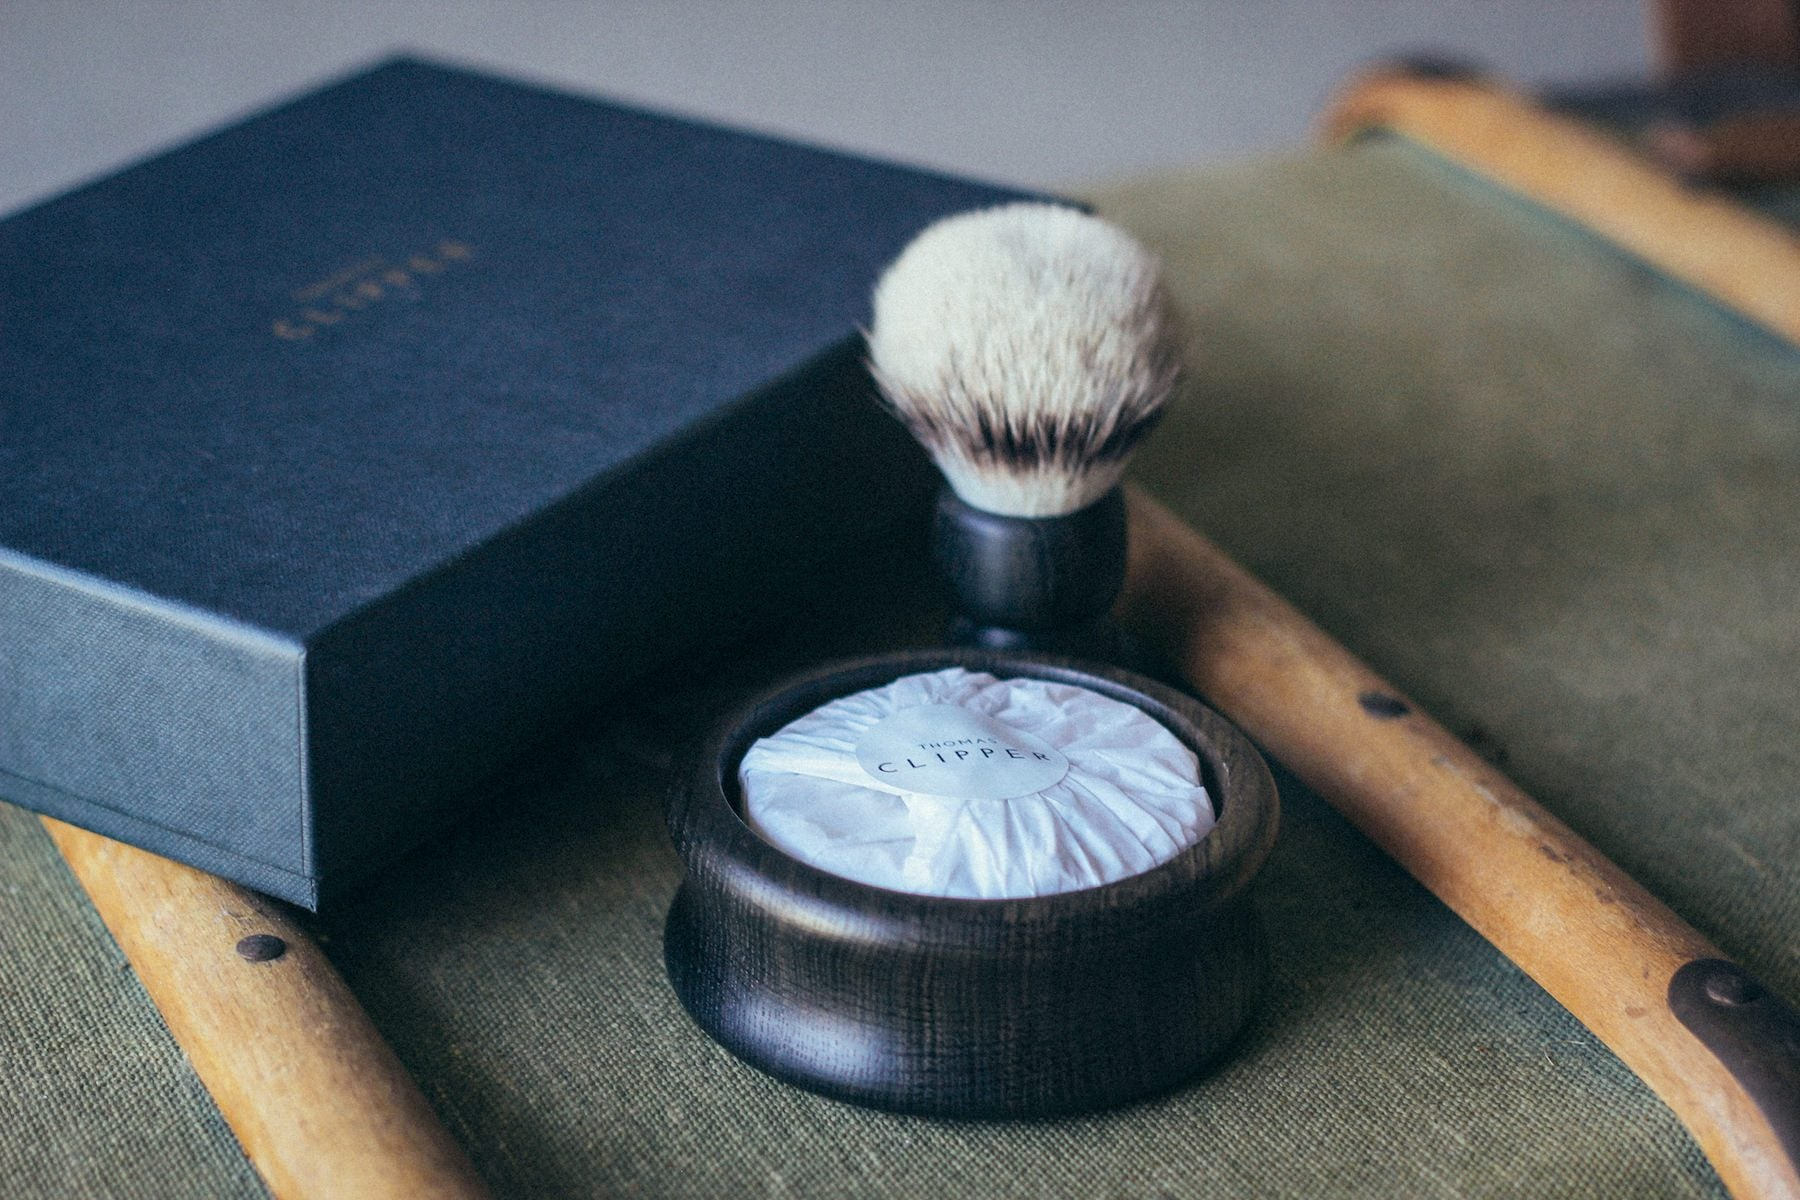 Premium gift box, shaving brush, bowl and soap. Its ancient origin means every morning will be a unique morning indulgence. Made in Britain by Thomas Clipper.